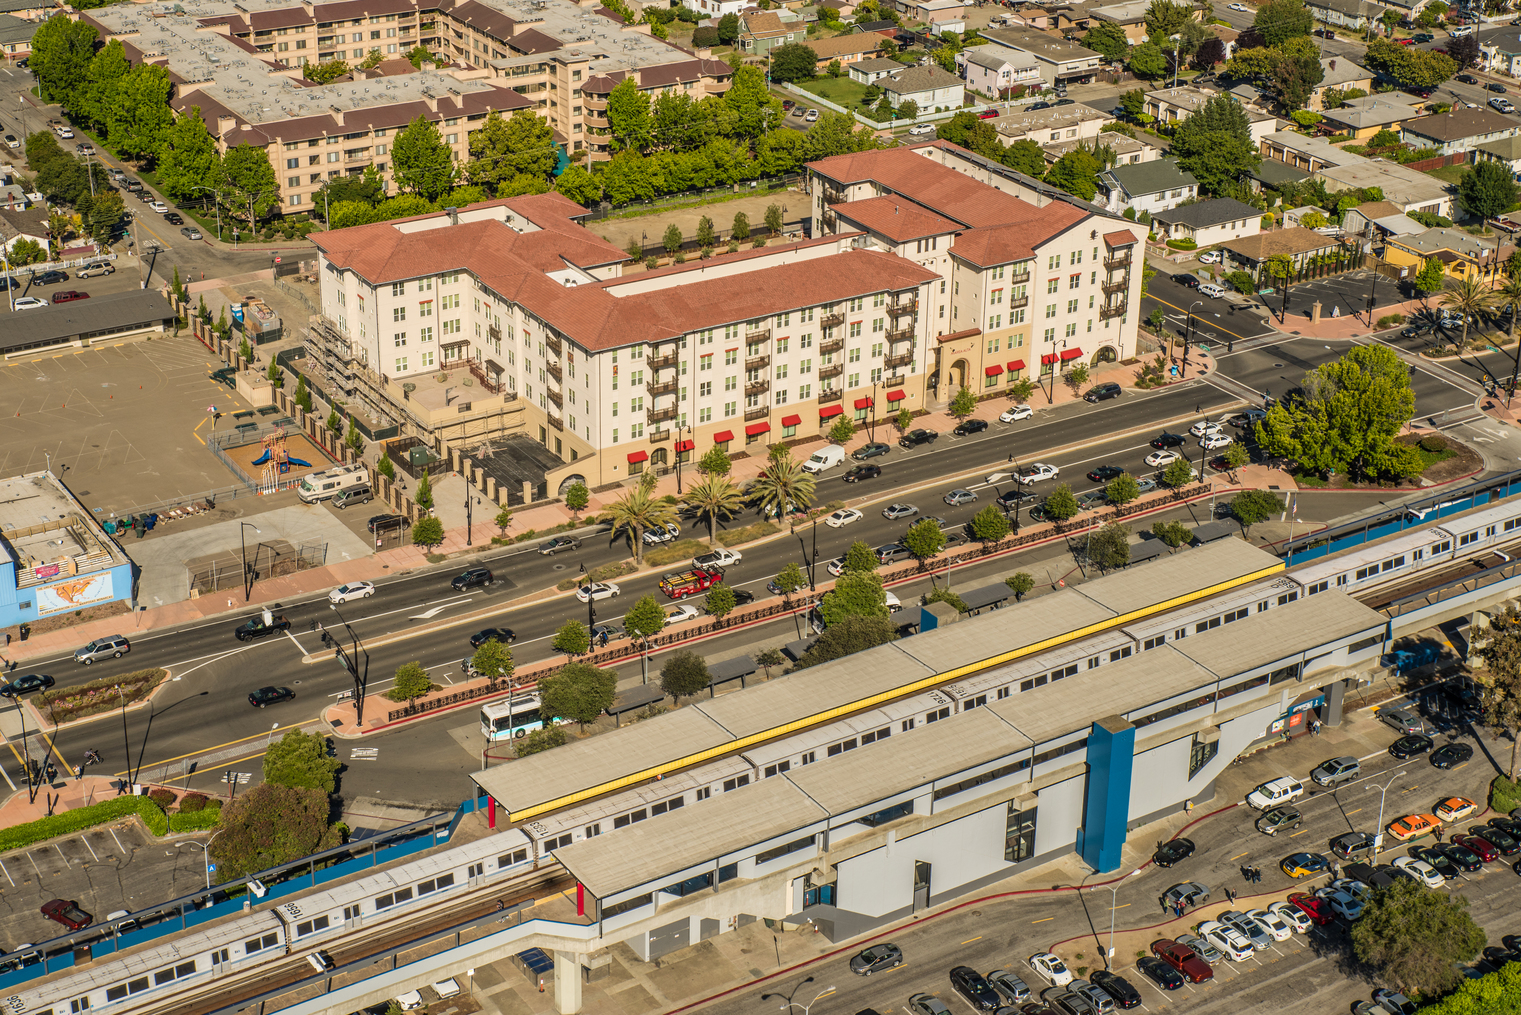 A 200 unit building was built on transit land in California. In front of the building is the San Leandro Bart Station.